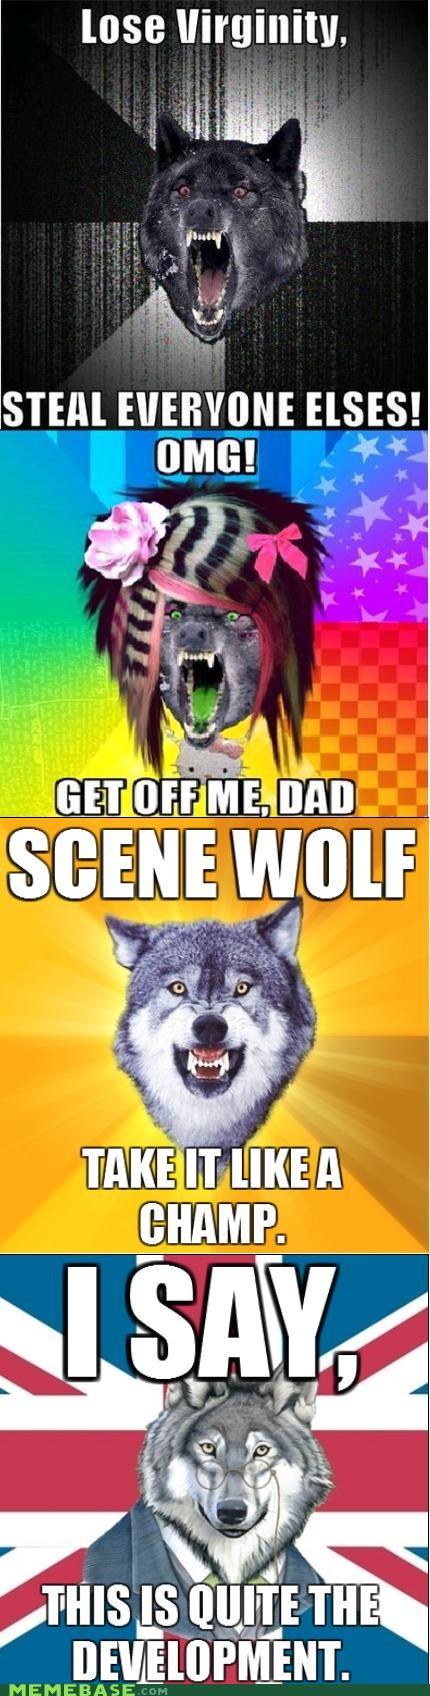 Courage Wolf Insanity Wolf reunion saga scene wolf wolves - 4767640320